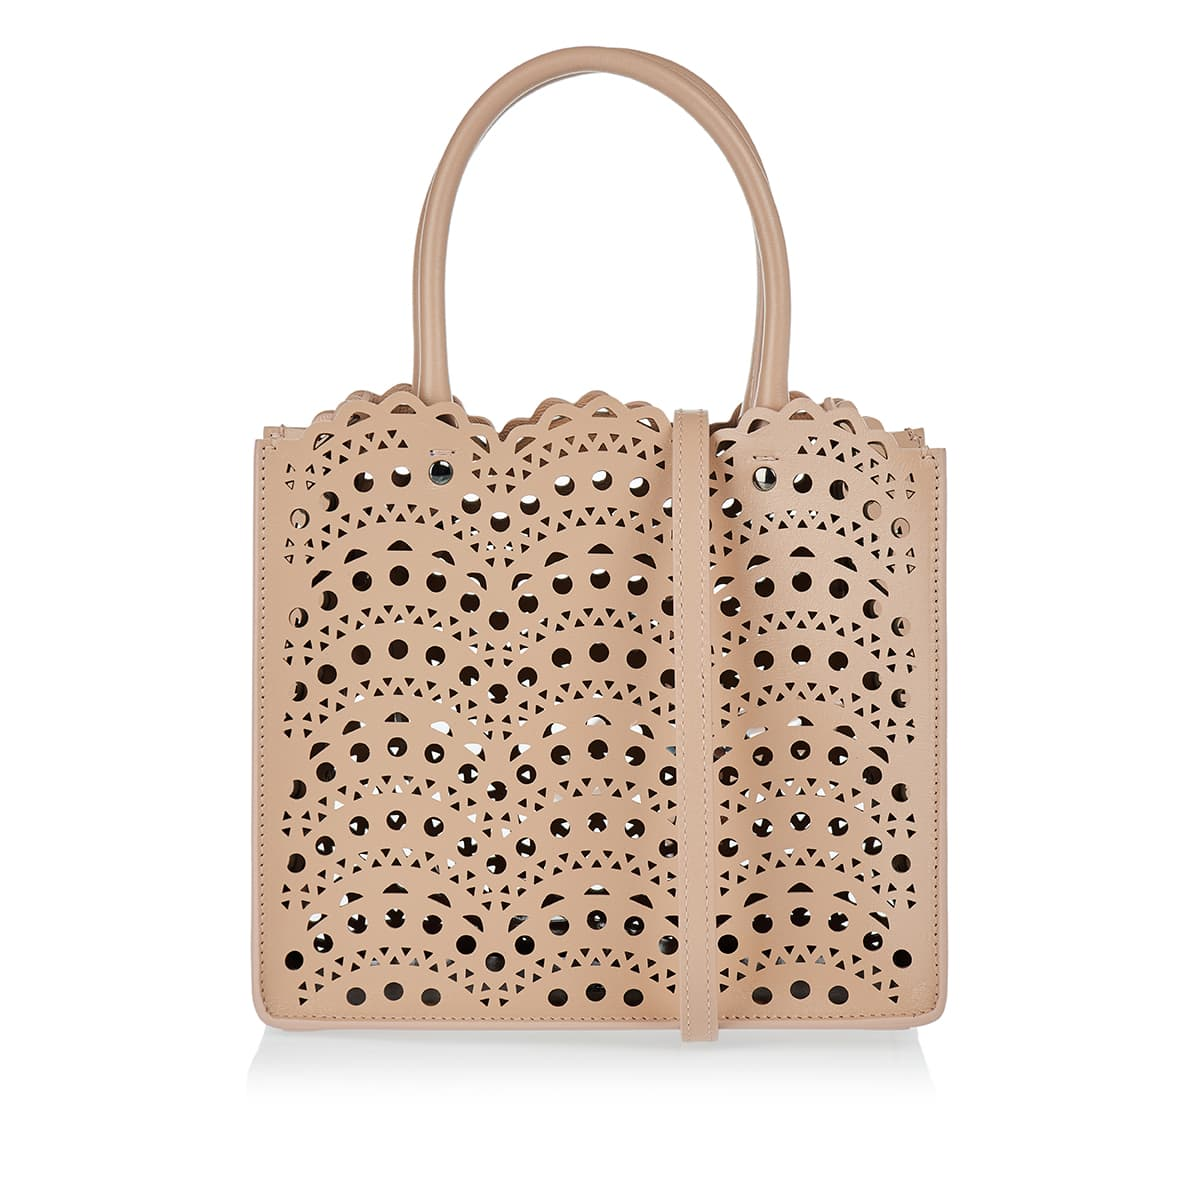 Garance 20 small laser-cut leather tote